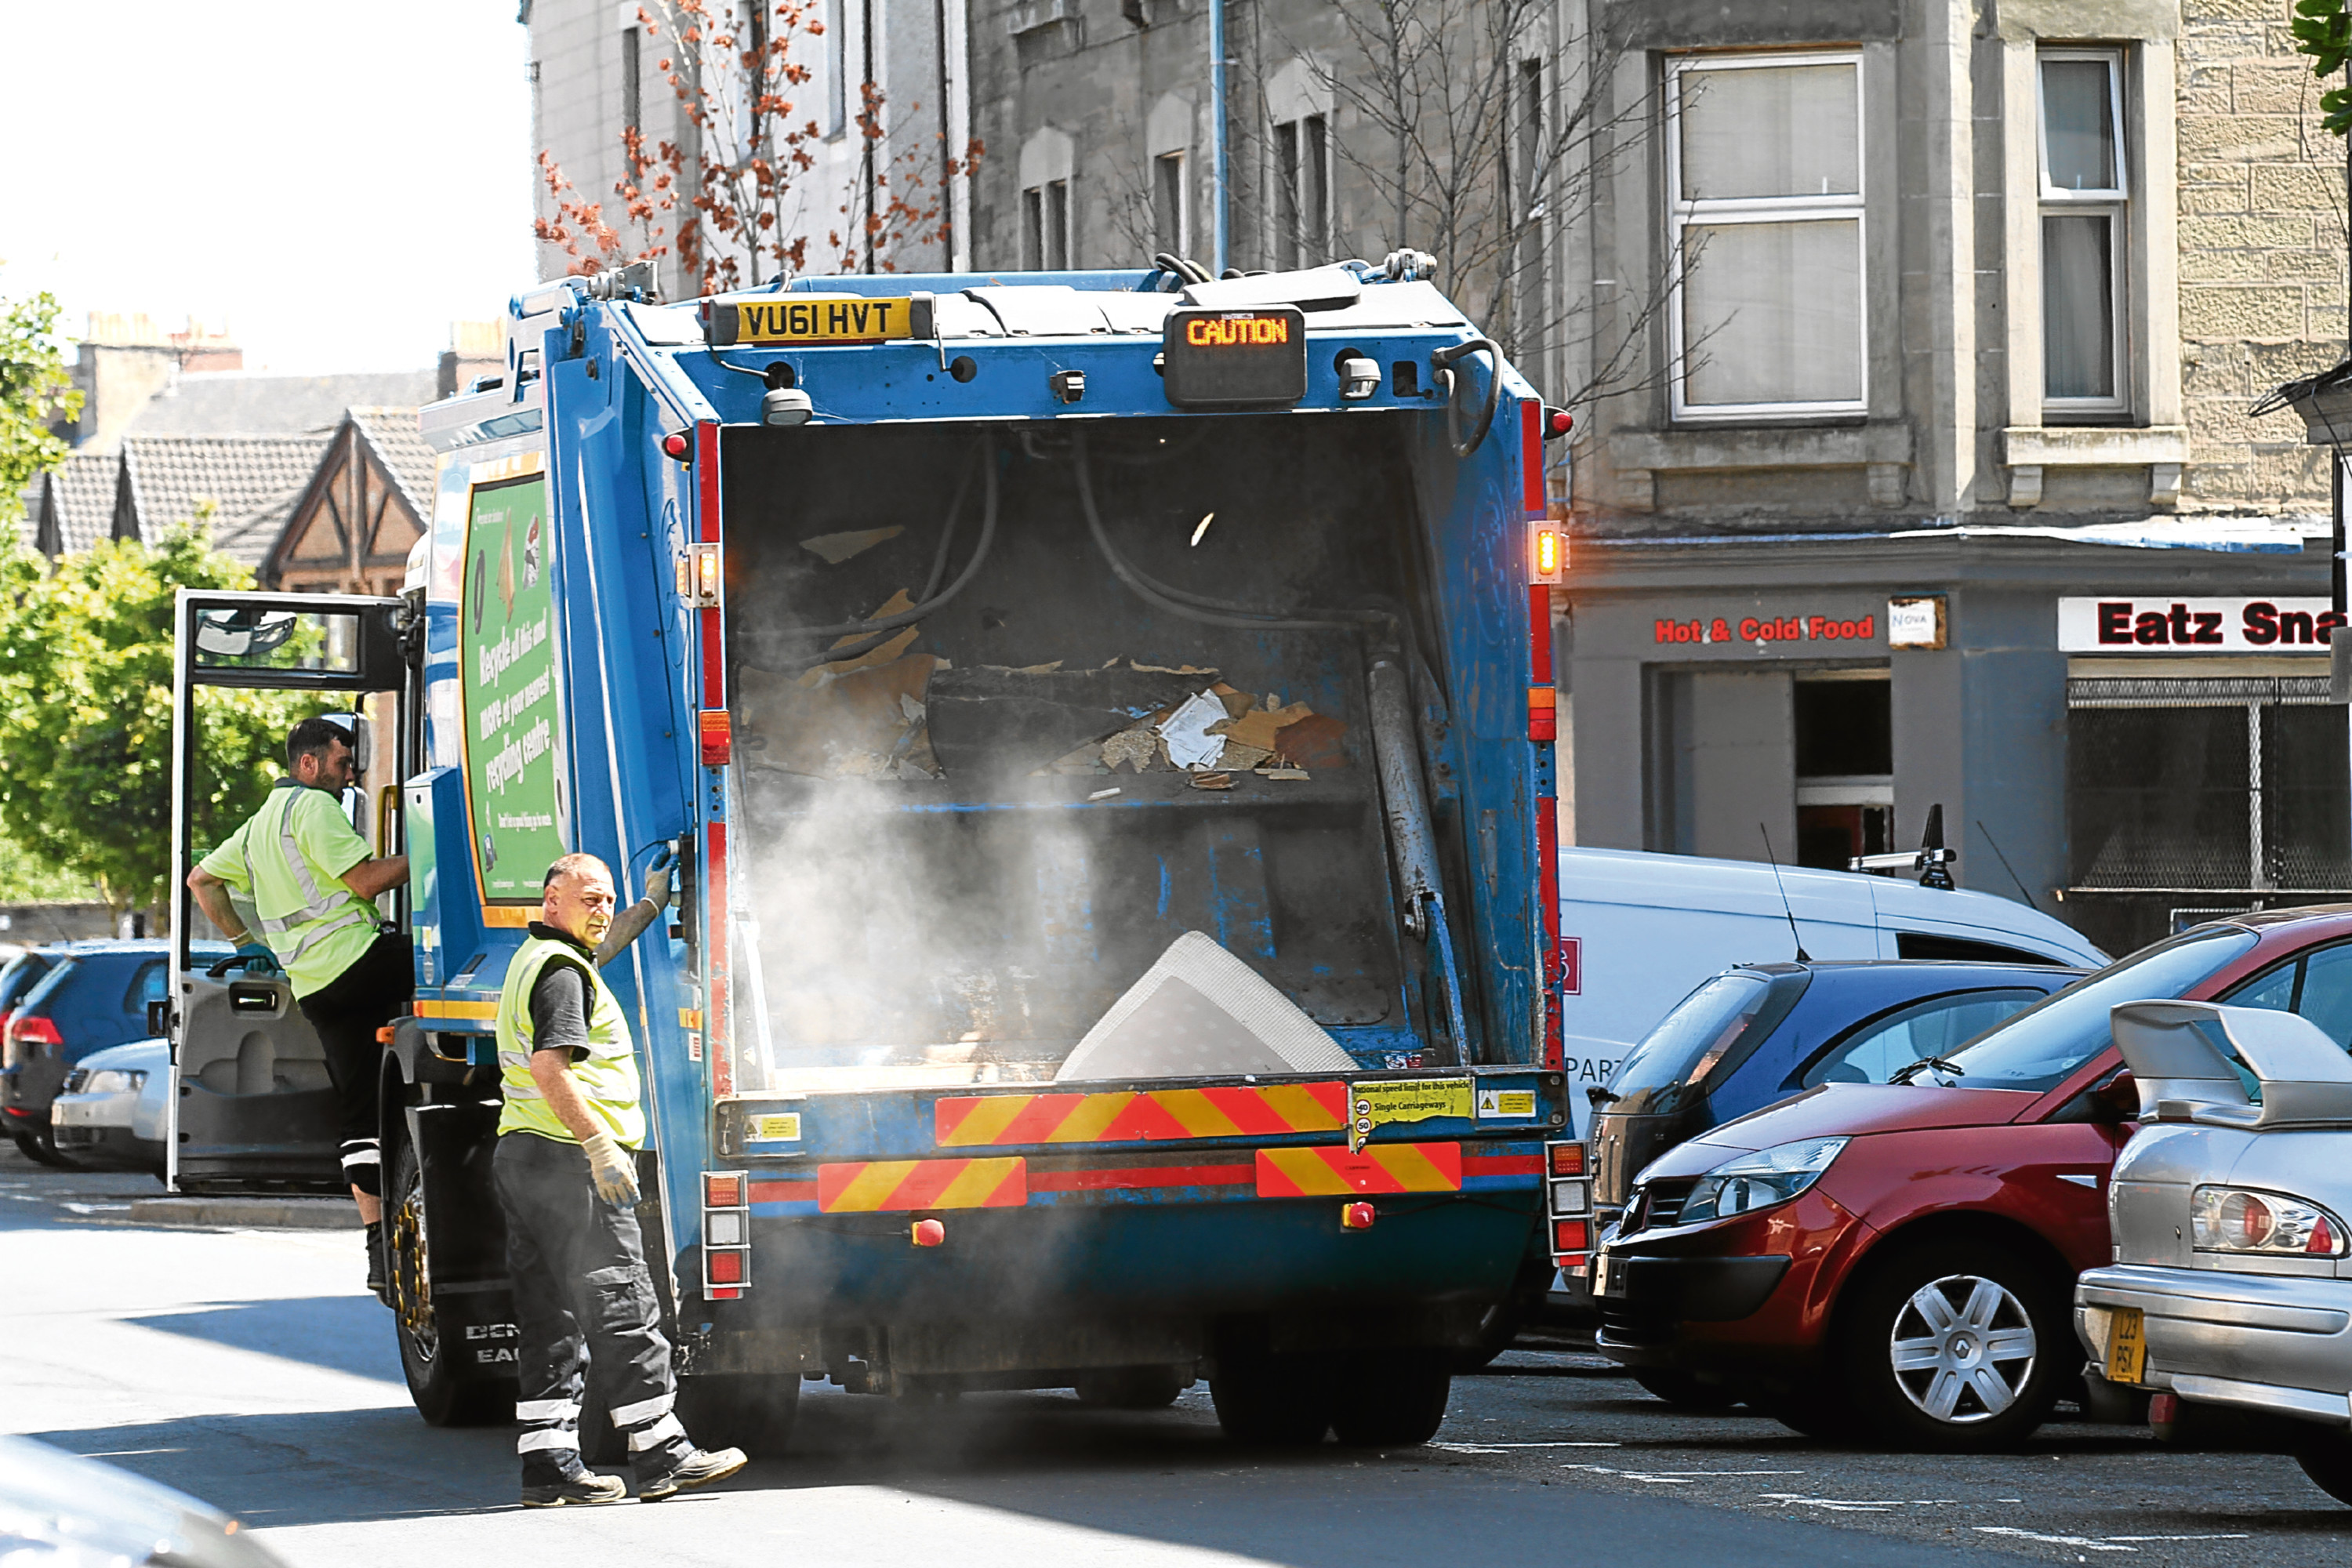 Staff have been redeployed to help with bin collections